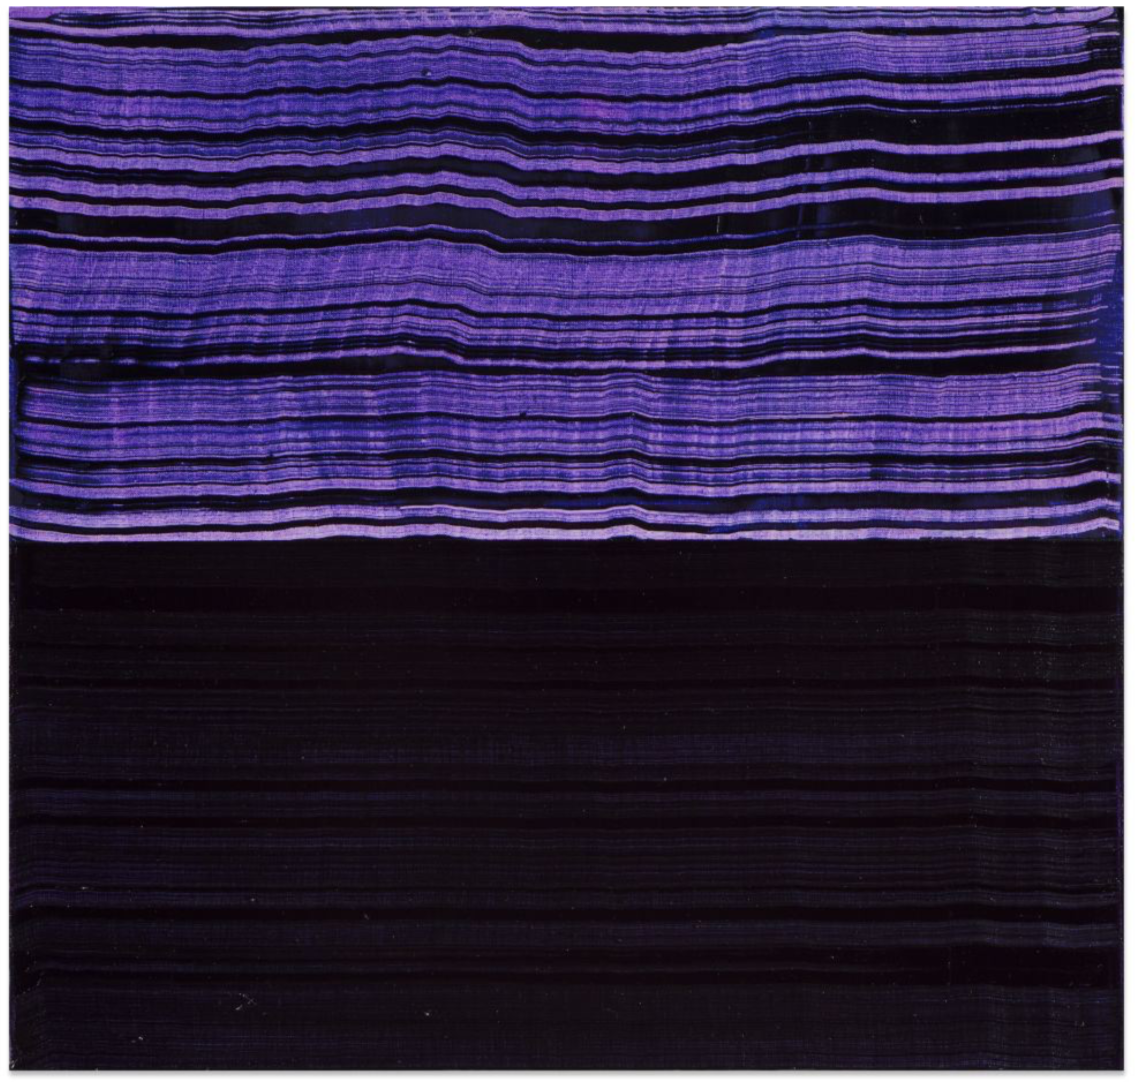 Violet Blue and Black 1 , 2016, Oil on linen, 23 x 24 inches